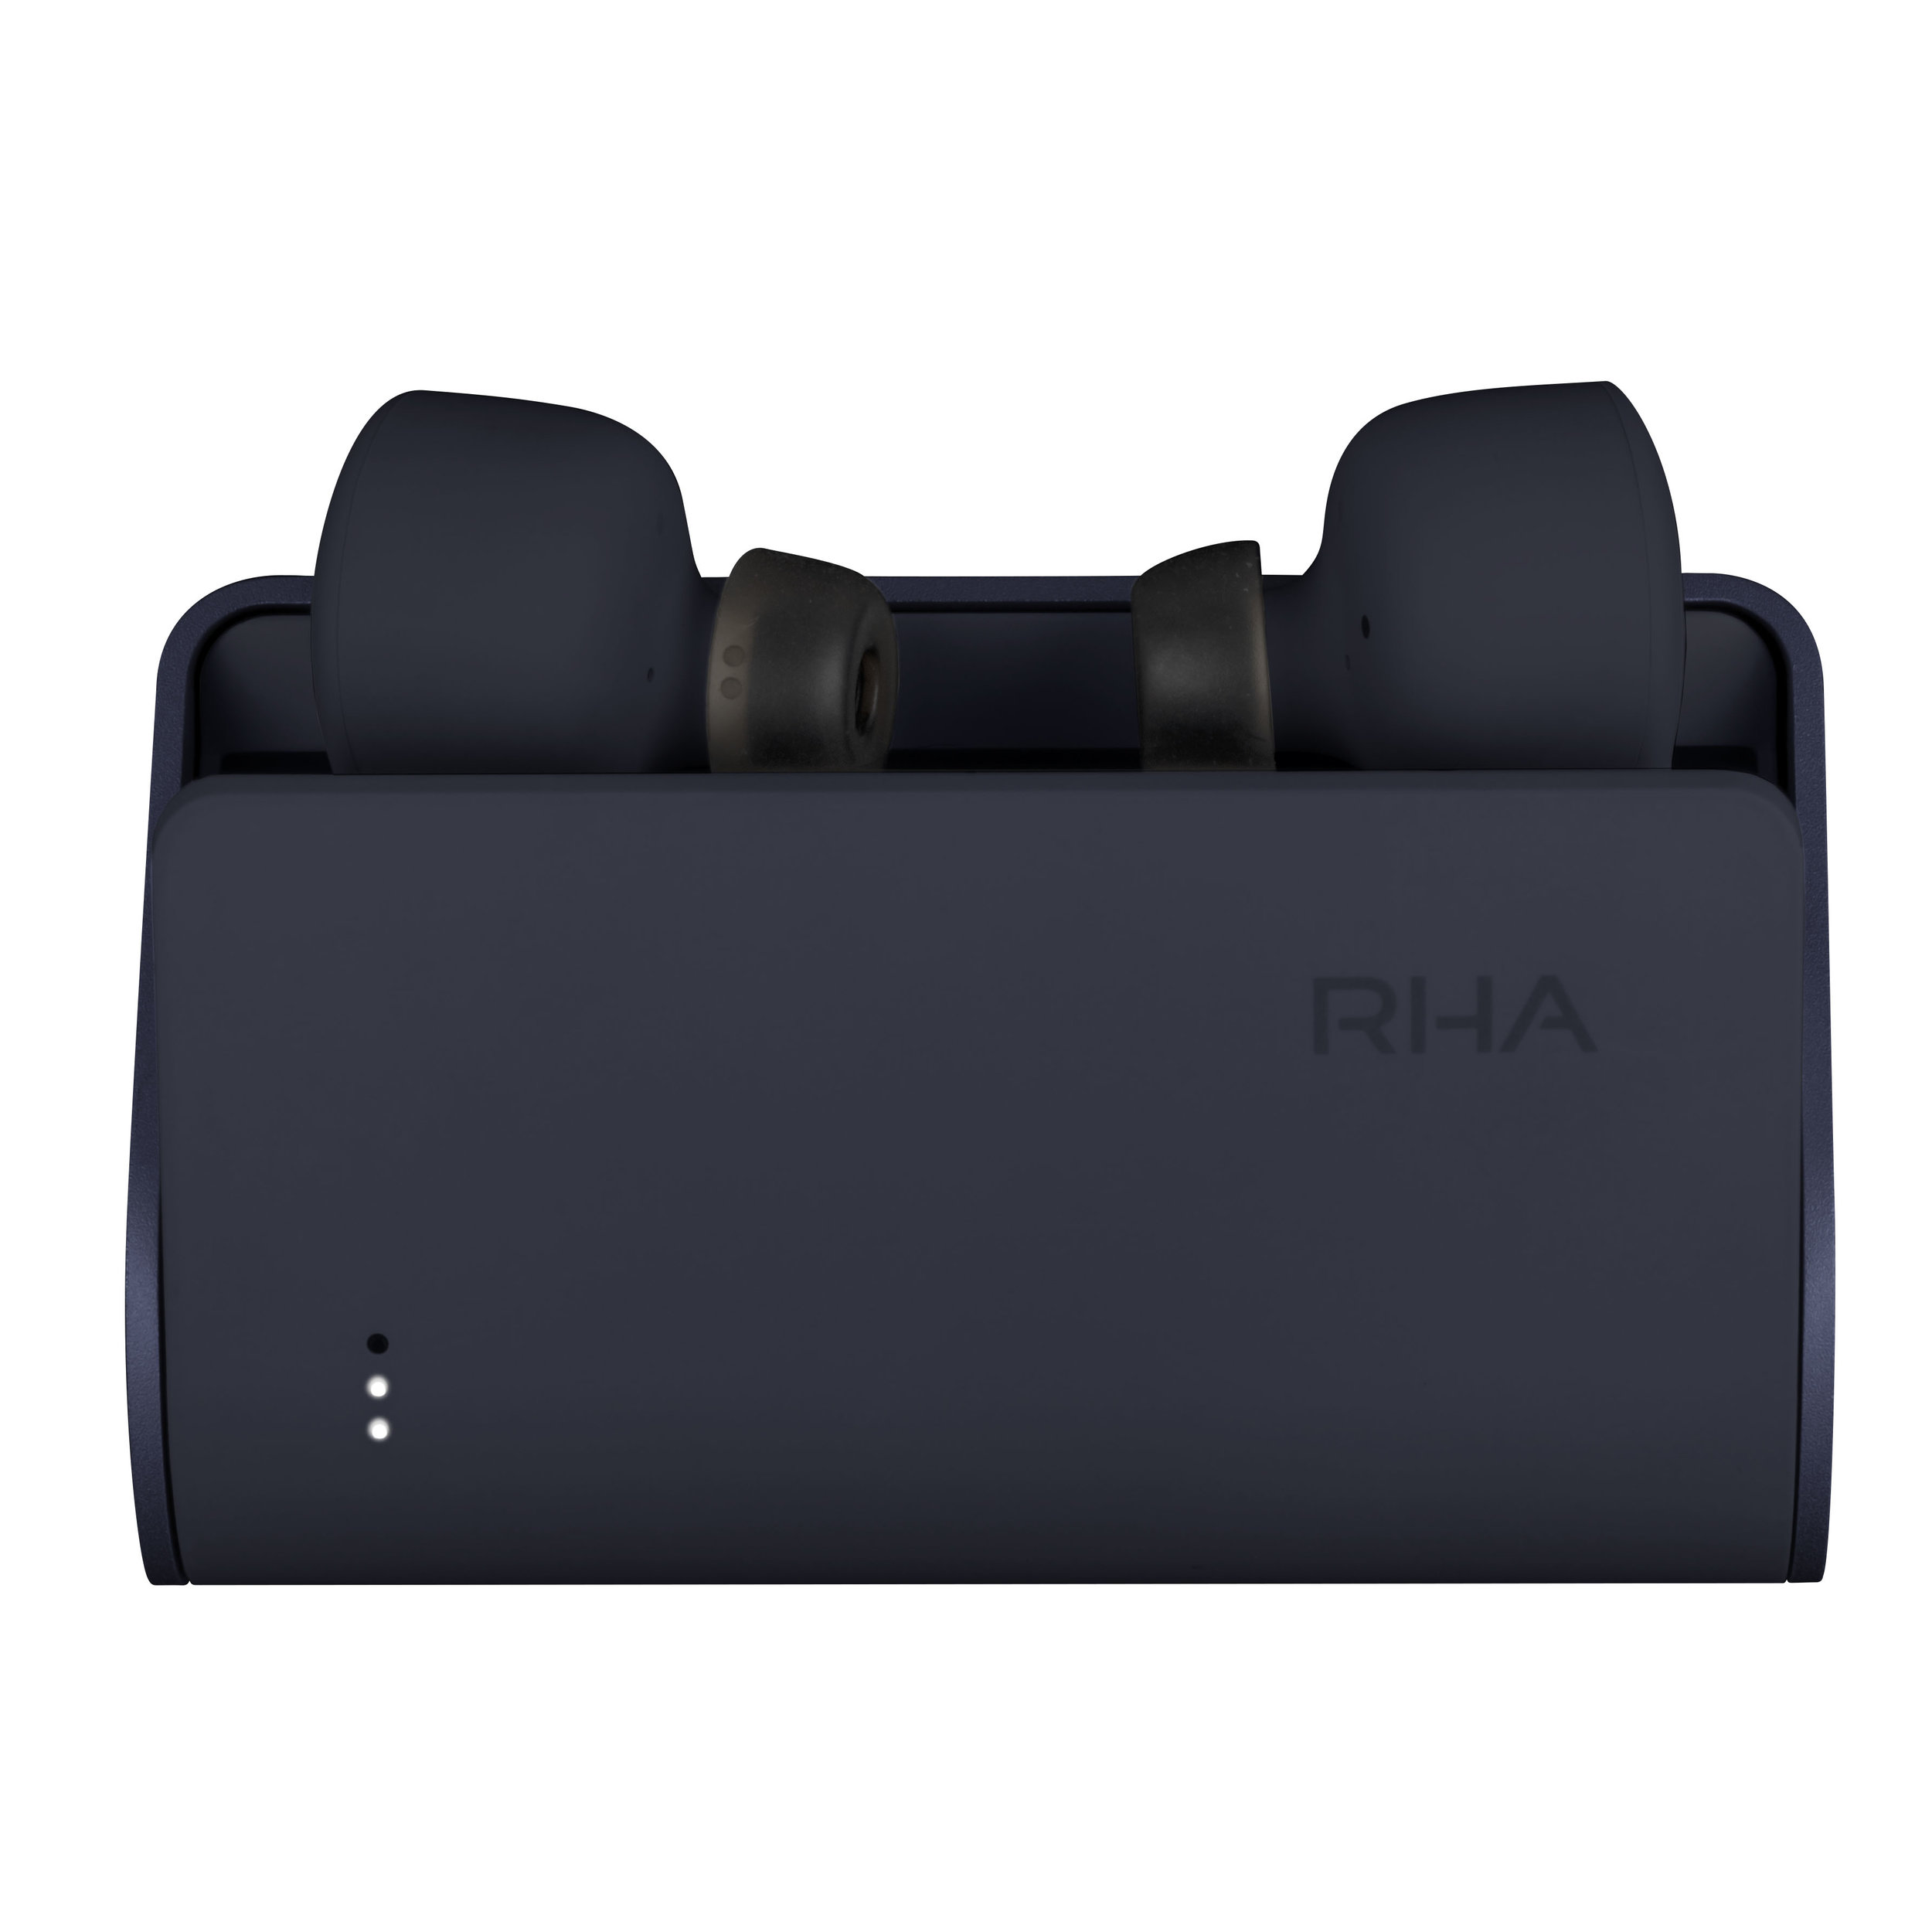 RHA_TrueConnectPackaging_190508_MRP_0041.jpg